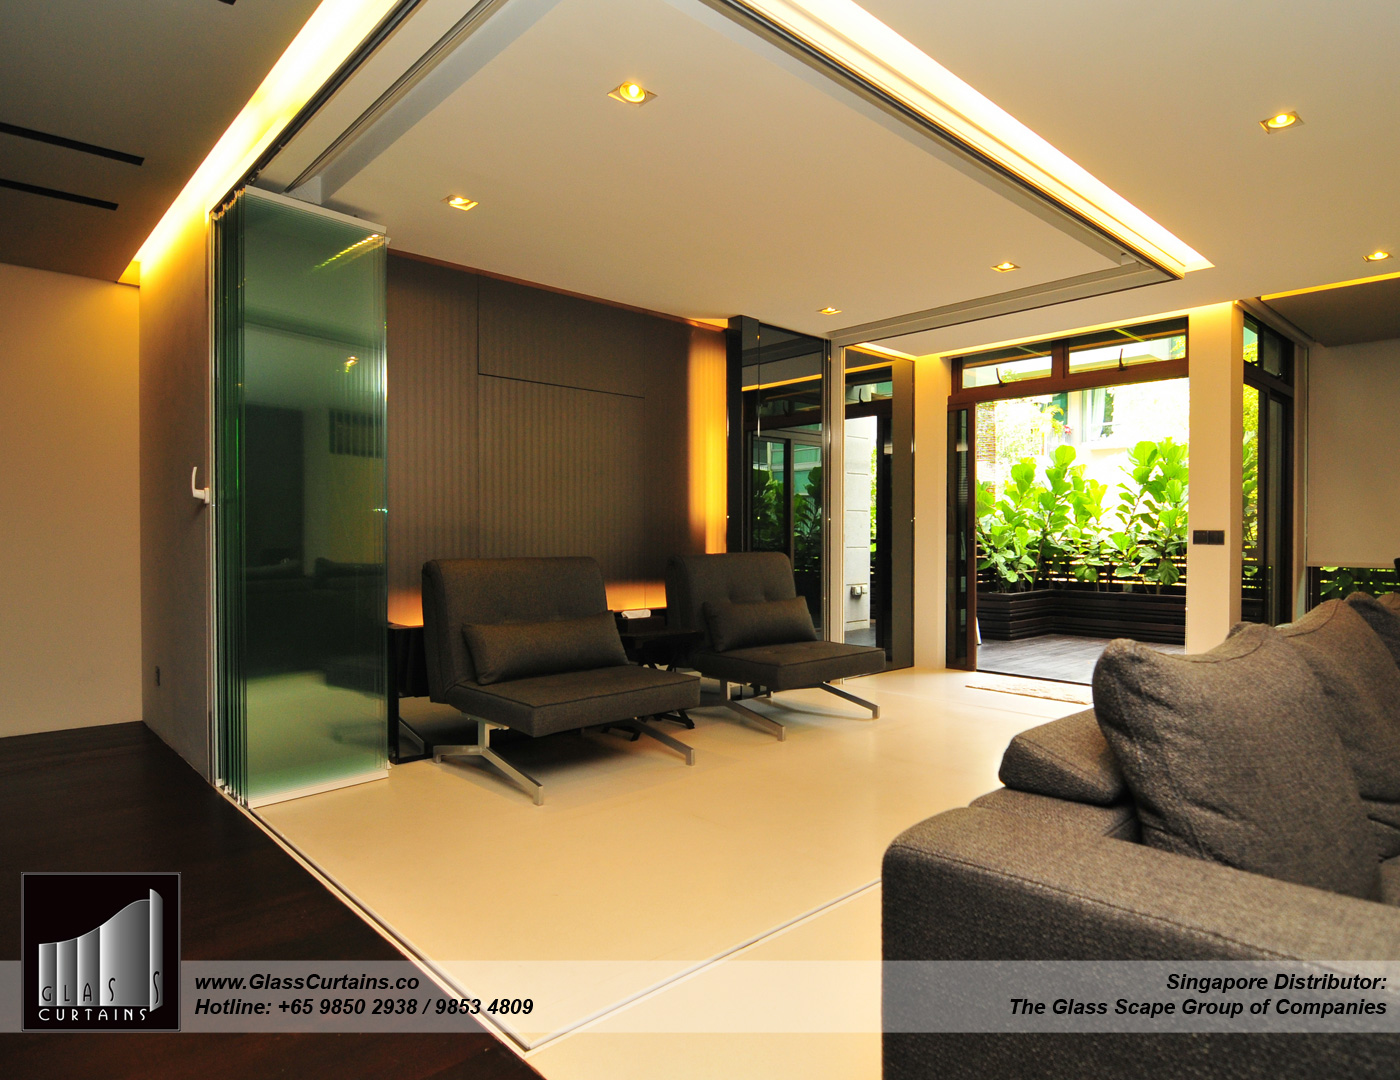 Glass Curtains® fully opened